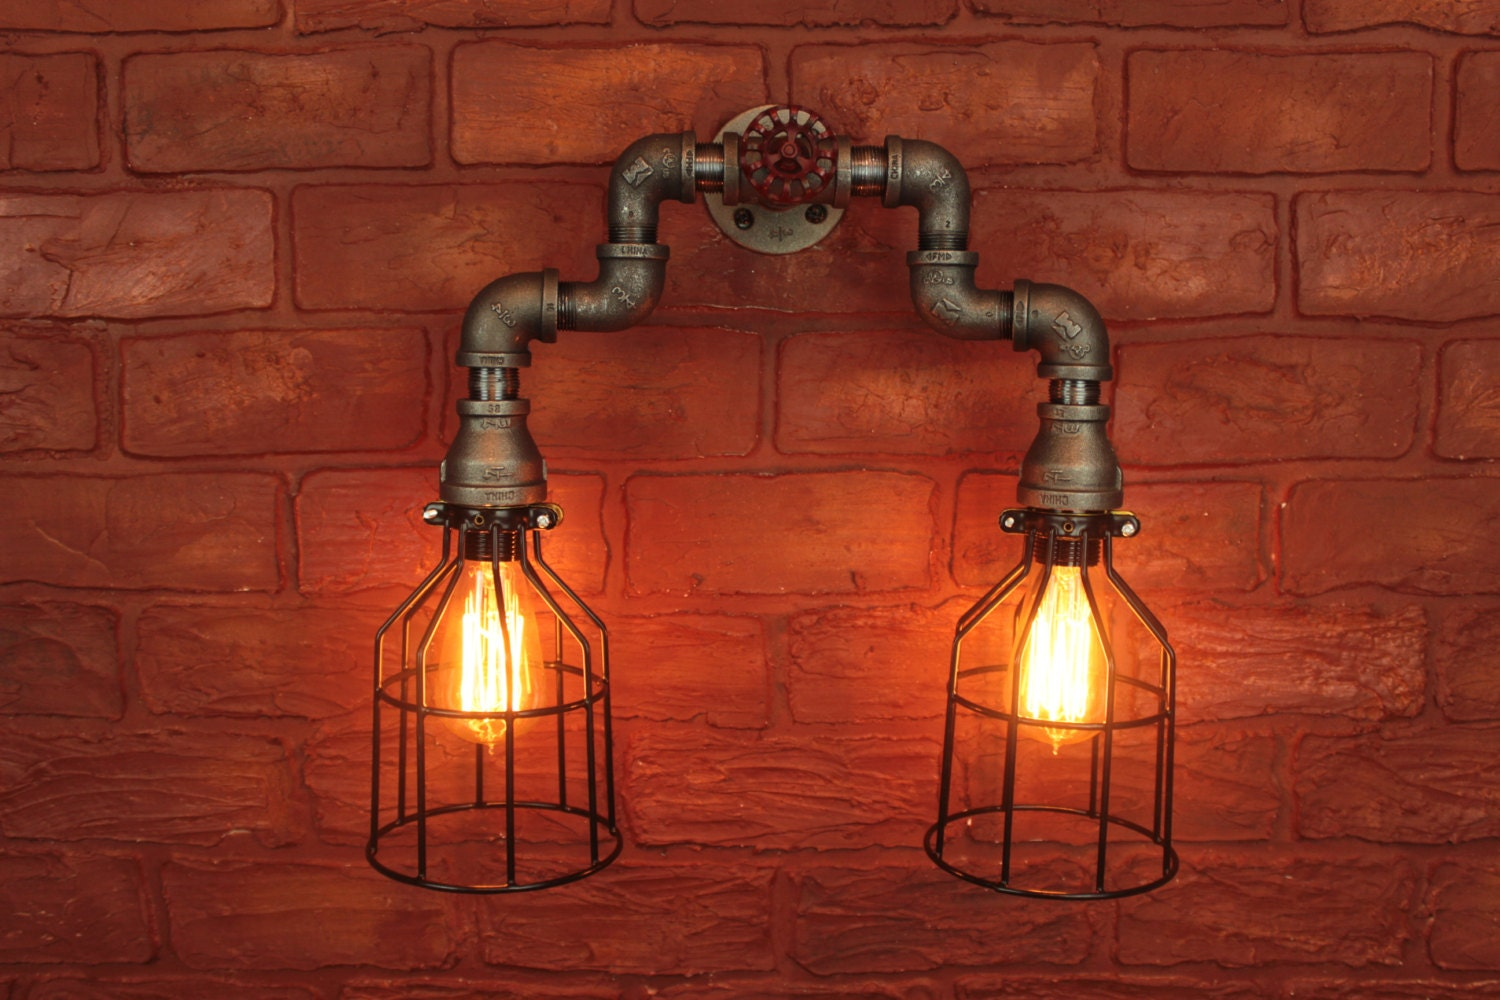 Pipe Cages Lighting Wall Art Steampunk By Hanormanor On Etsy